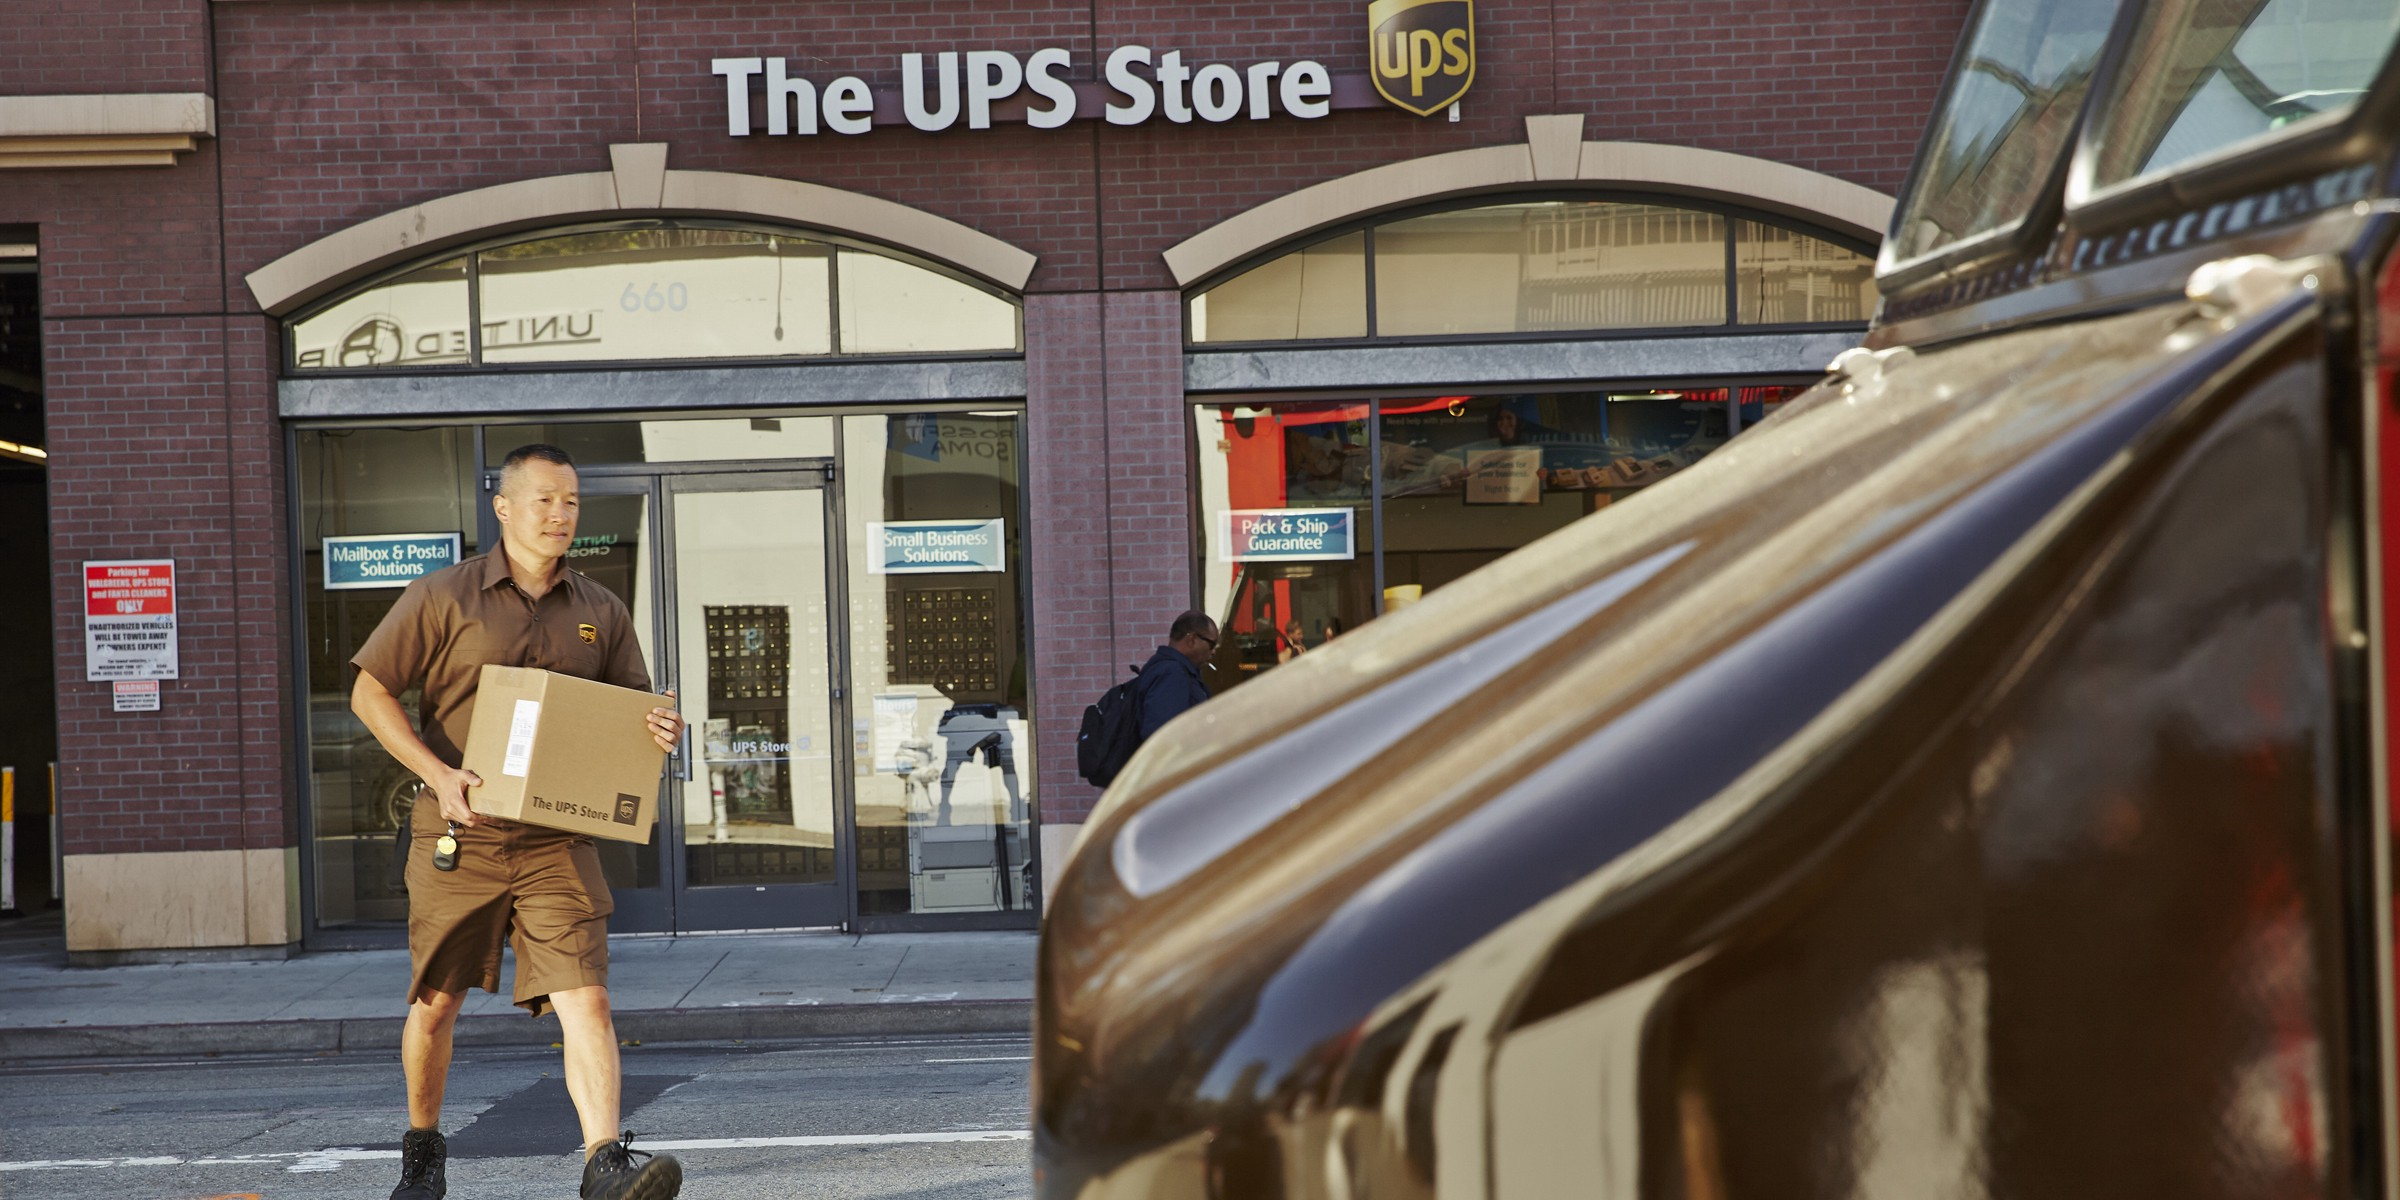 Why you can't trust UPS or the UPS Store - Christian Wardlaw